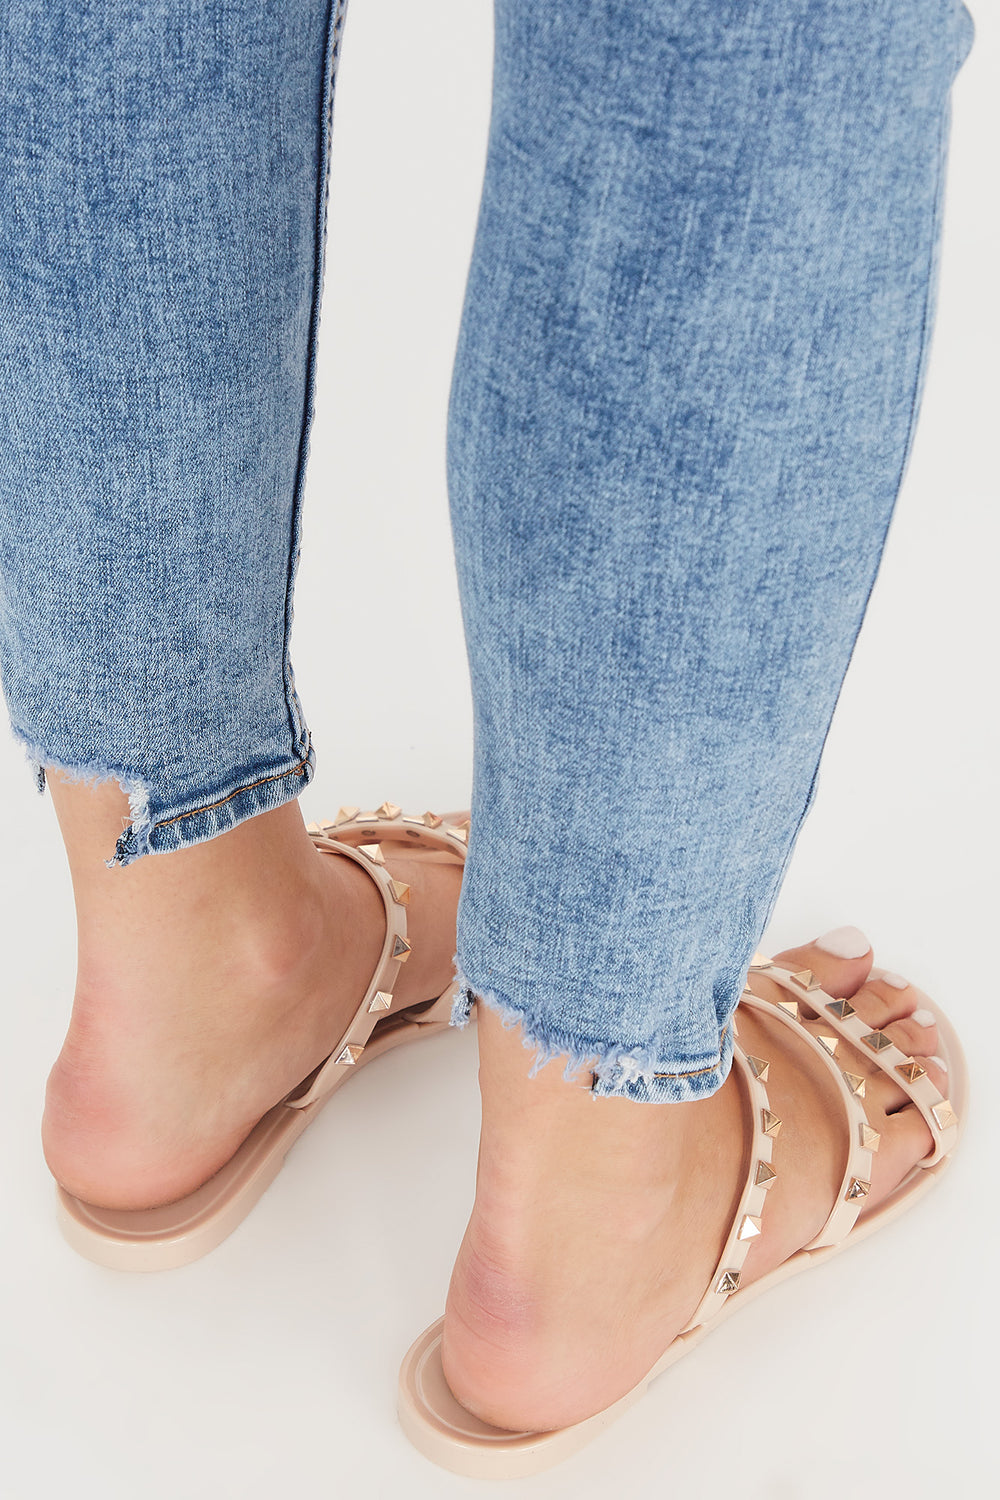 Studded Jelly Triple Band Sandal Natural